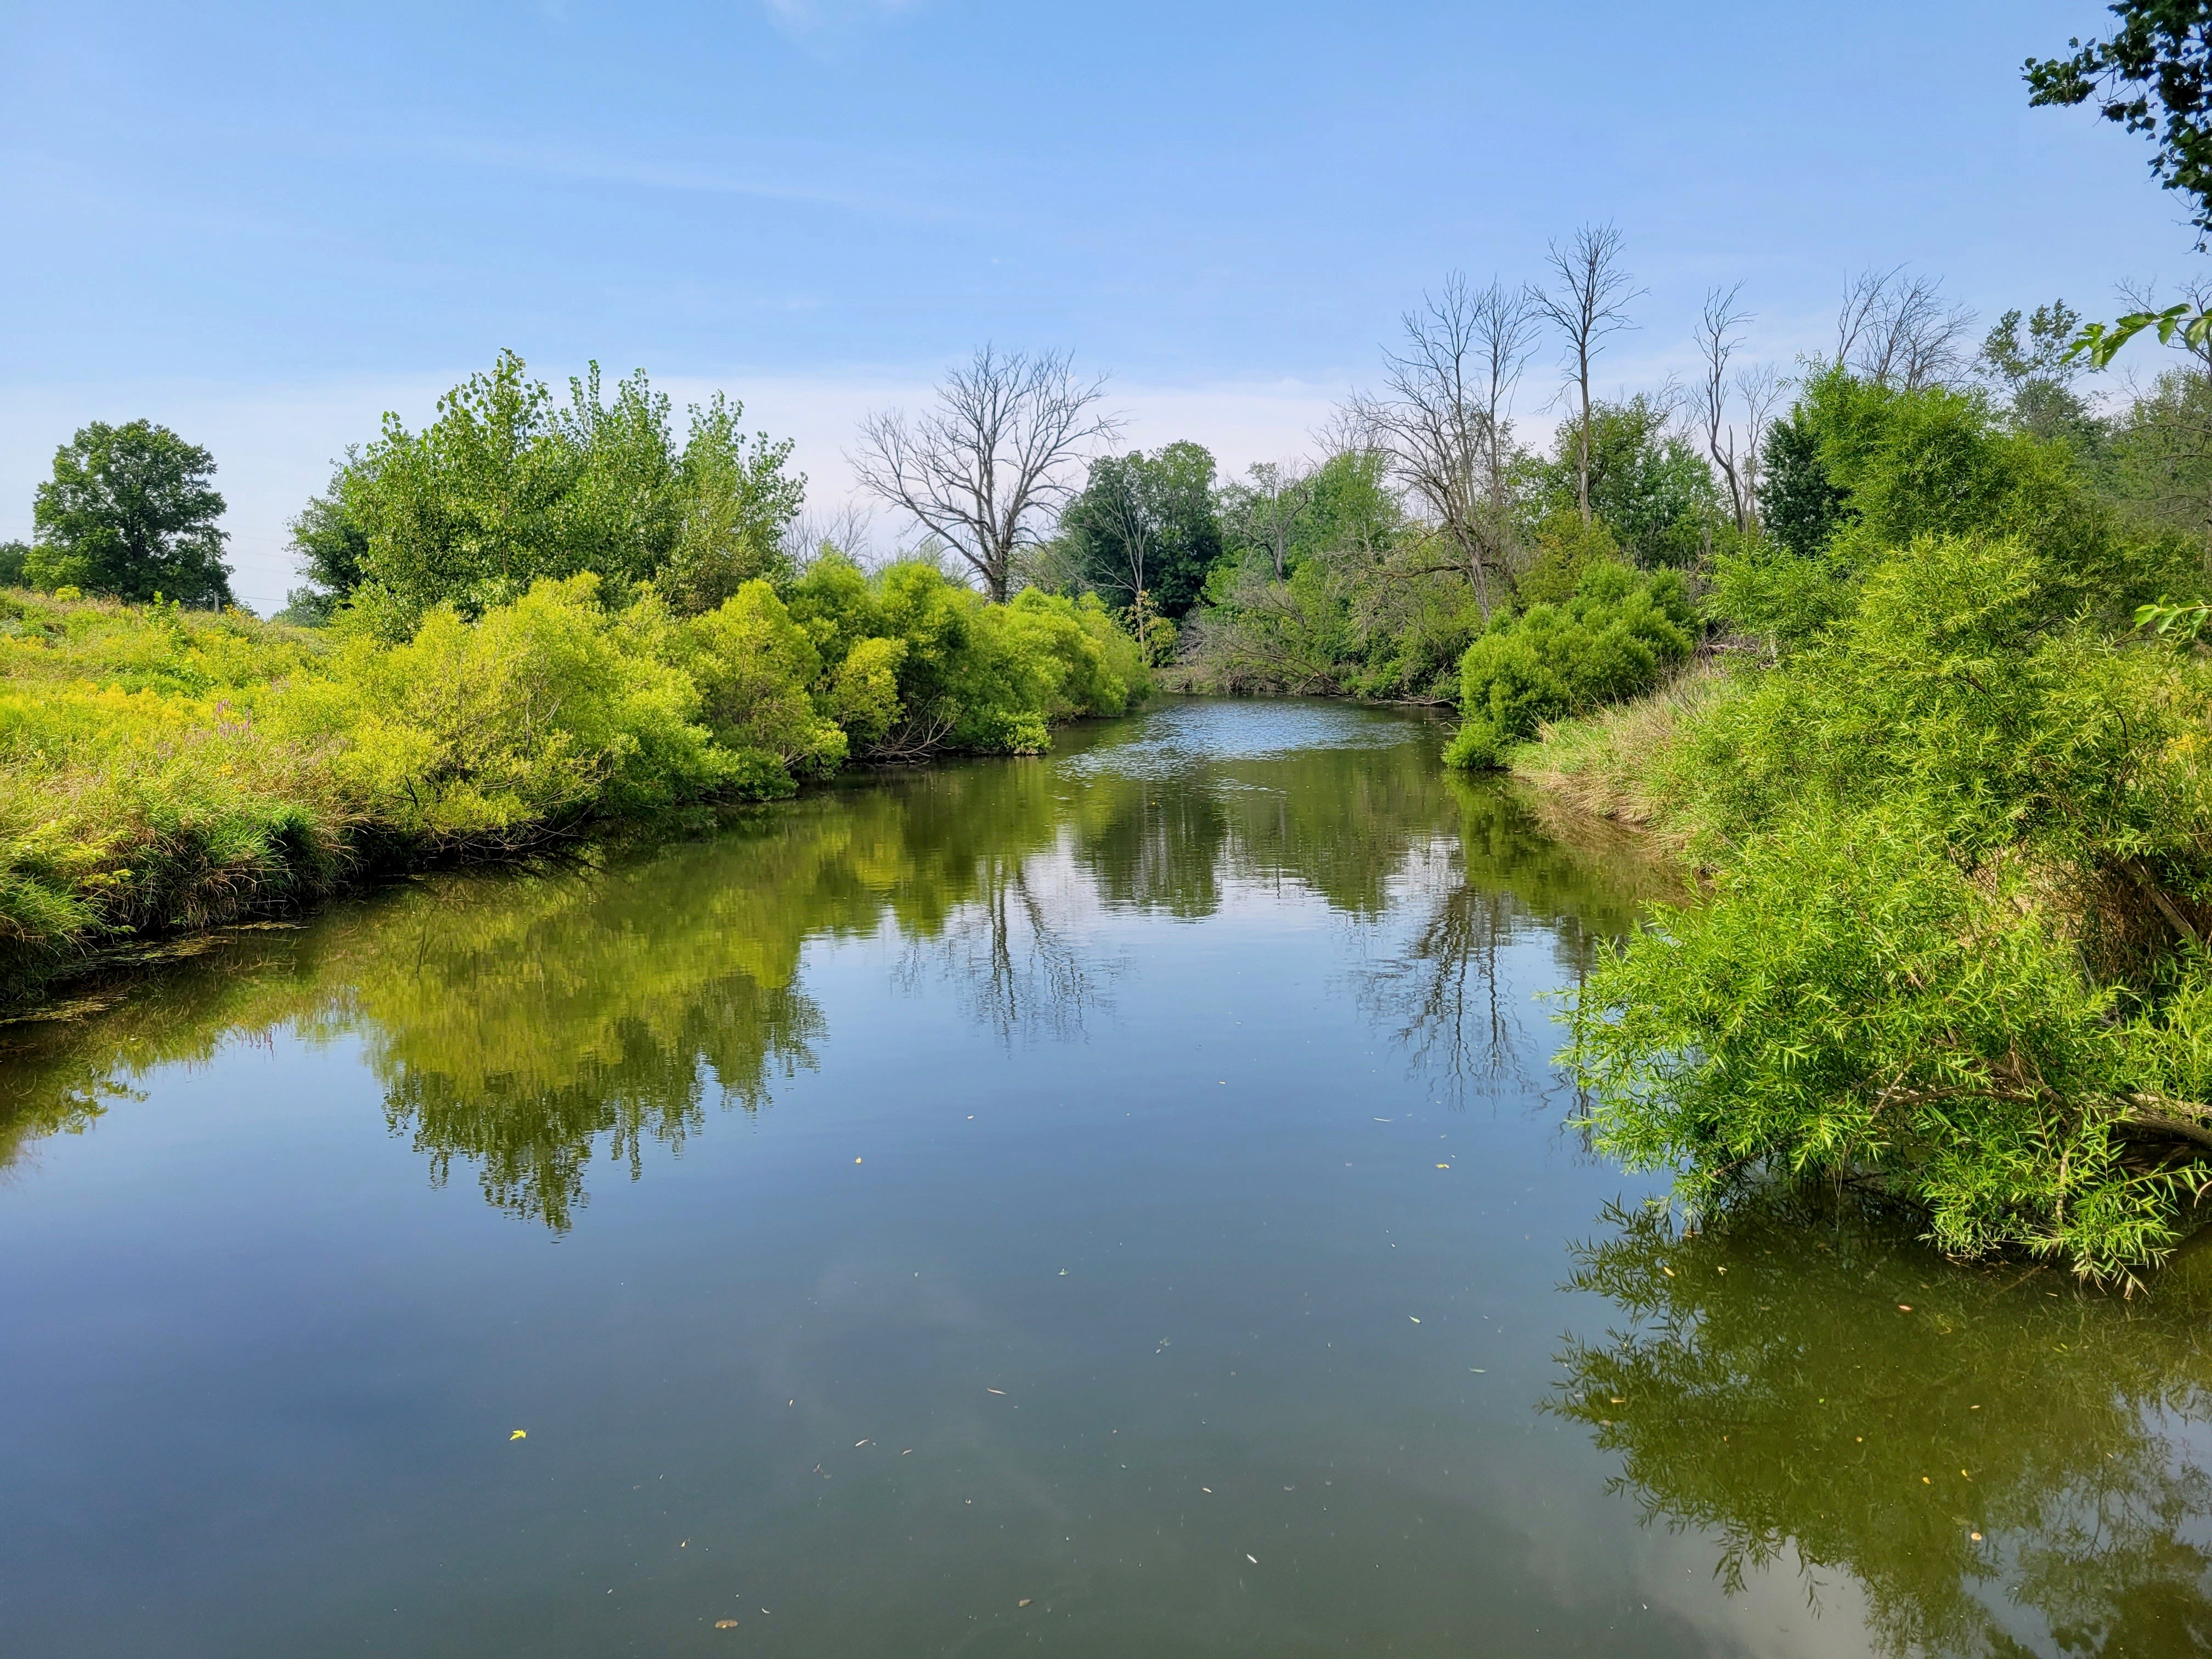 The majority of the Holland Country Club acreage was purchased by the Ottawa County Parks and Recreation Department. The land was reshaped and dubbed the Macatawa Greenspace in 2013.